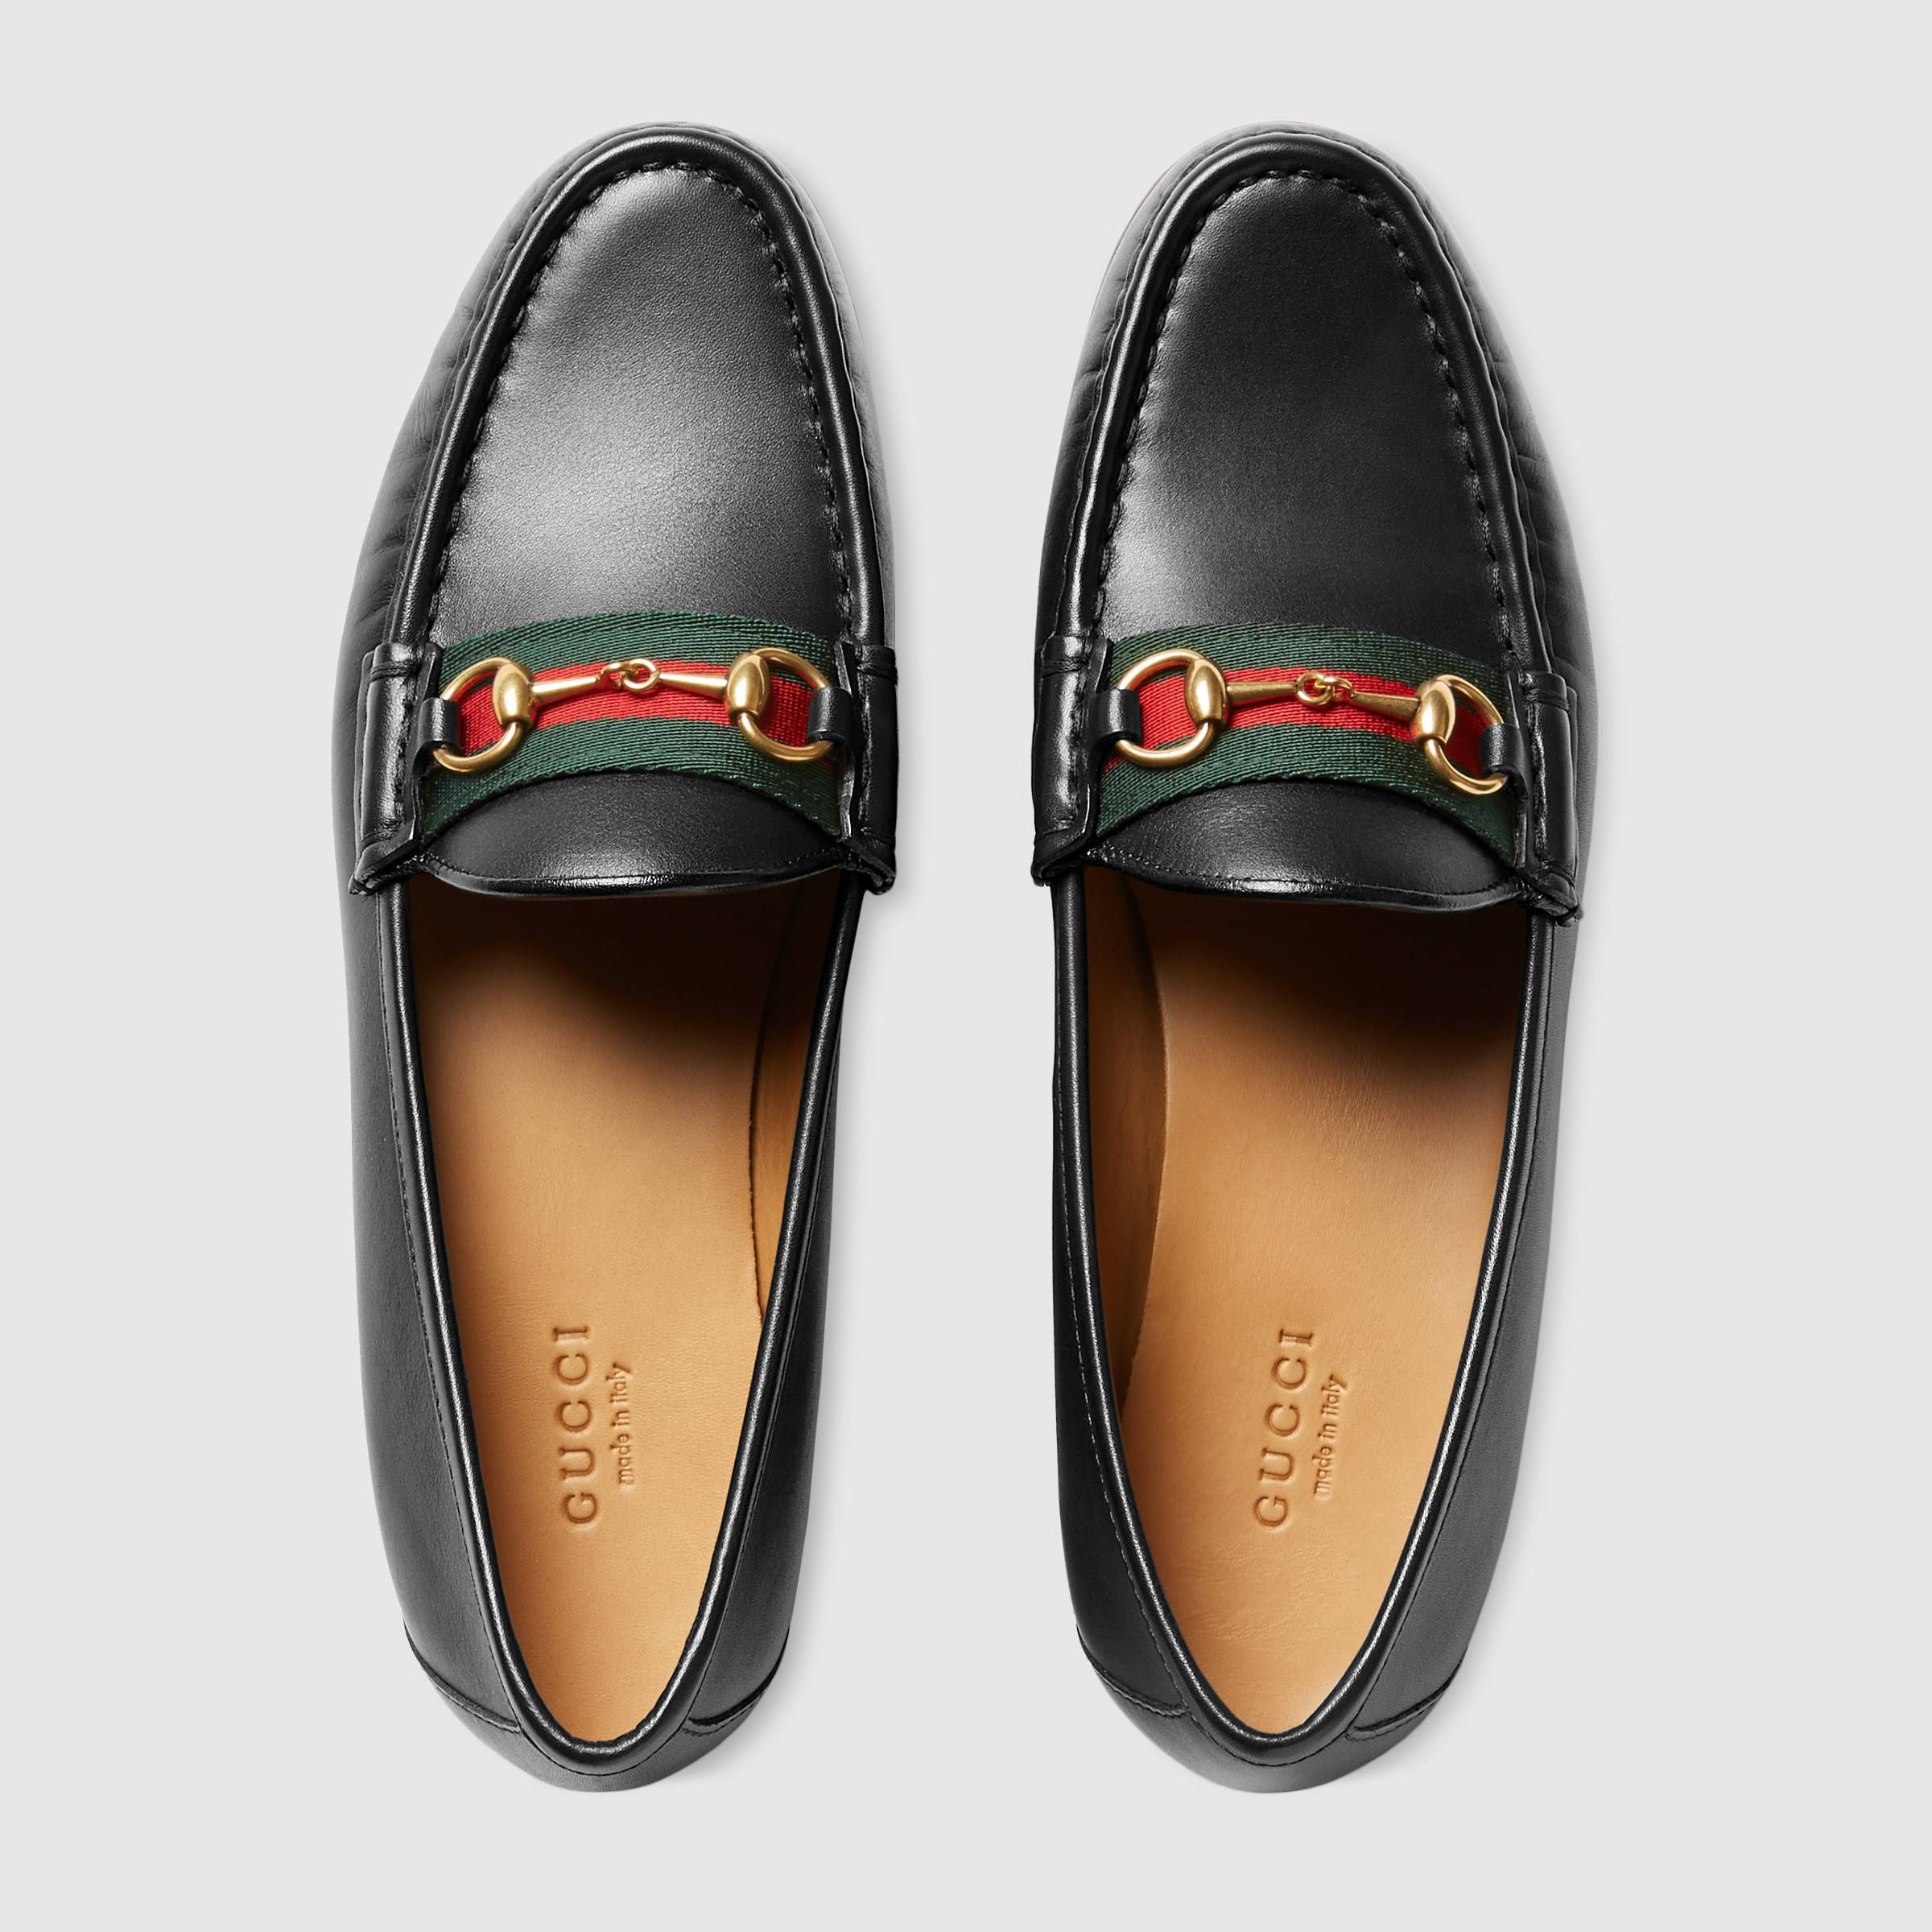 3082cf901dac 1953 Horsebit loafer in leather